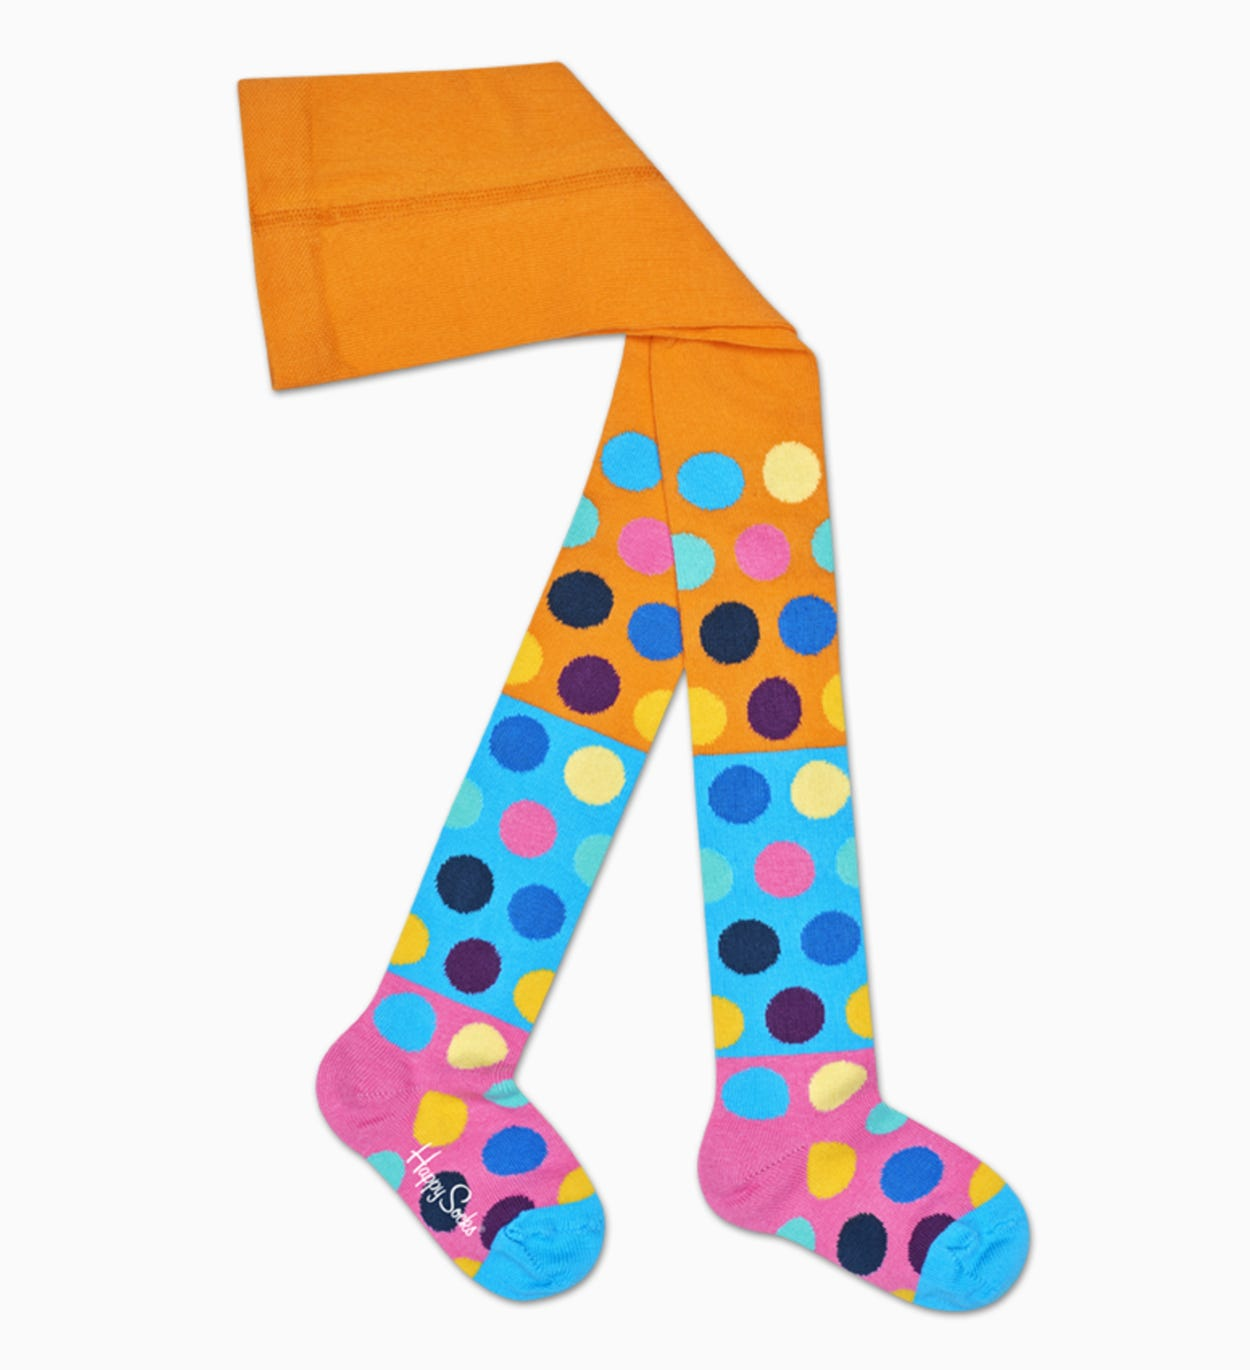 Orange Baby Strumpfhosen: Big Dot Block | Happy Socks